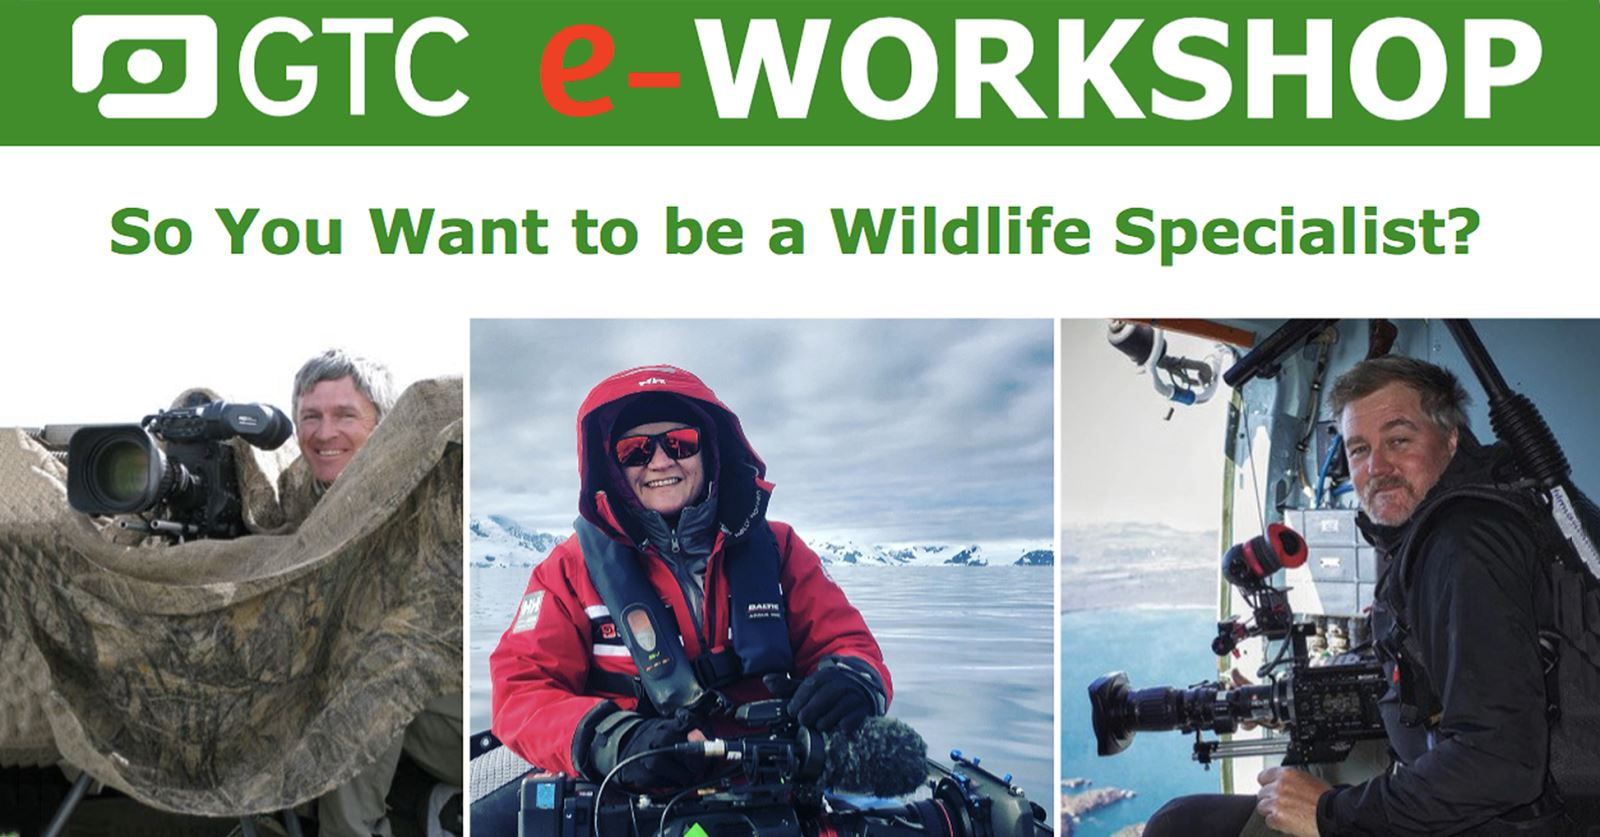 The recording of the GTC eWorkshop So you want be a wildlife specialist? is now available for members - click to view it